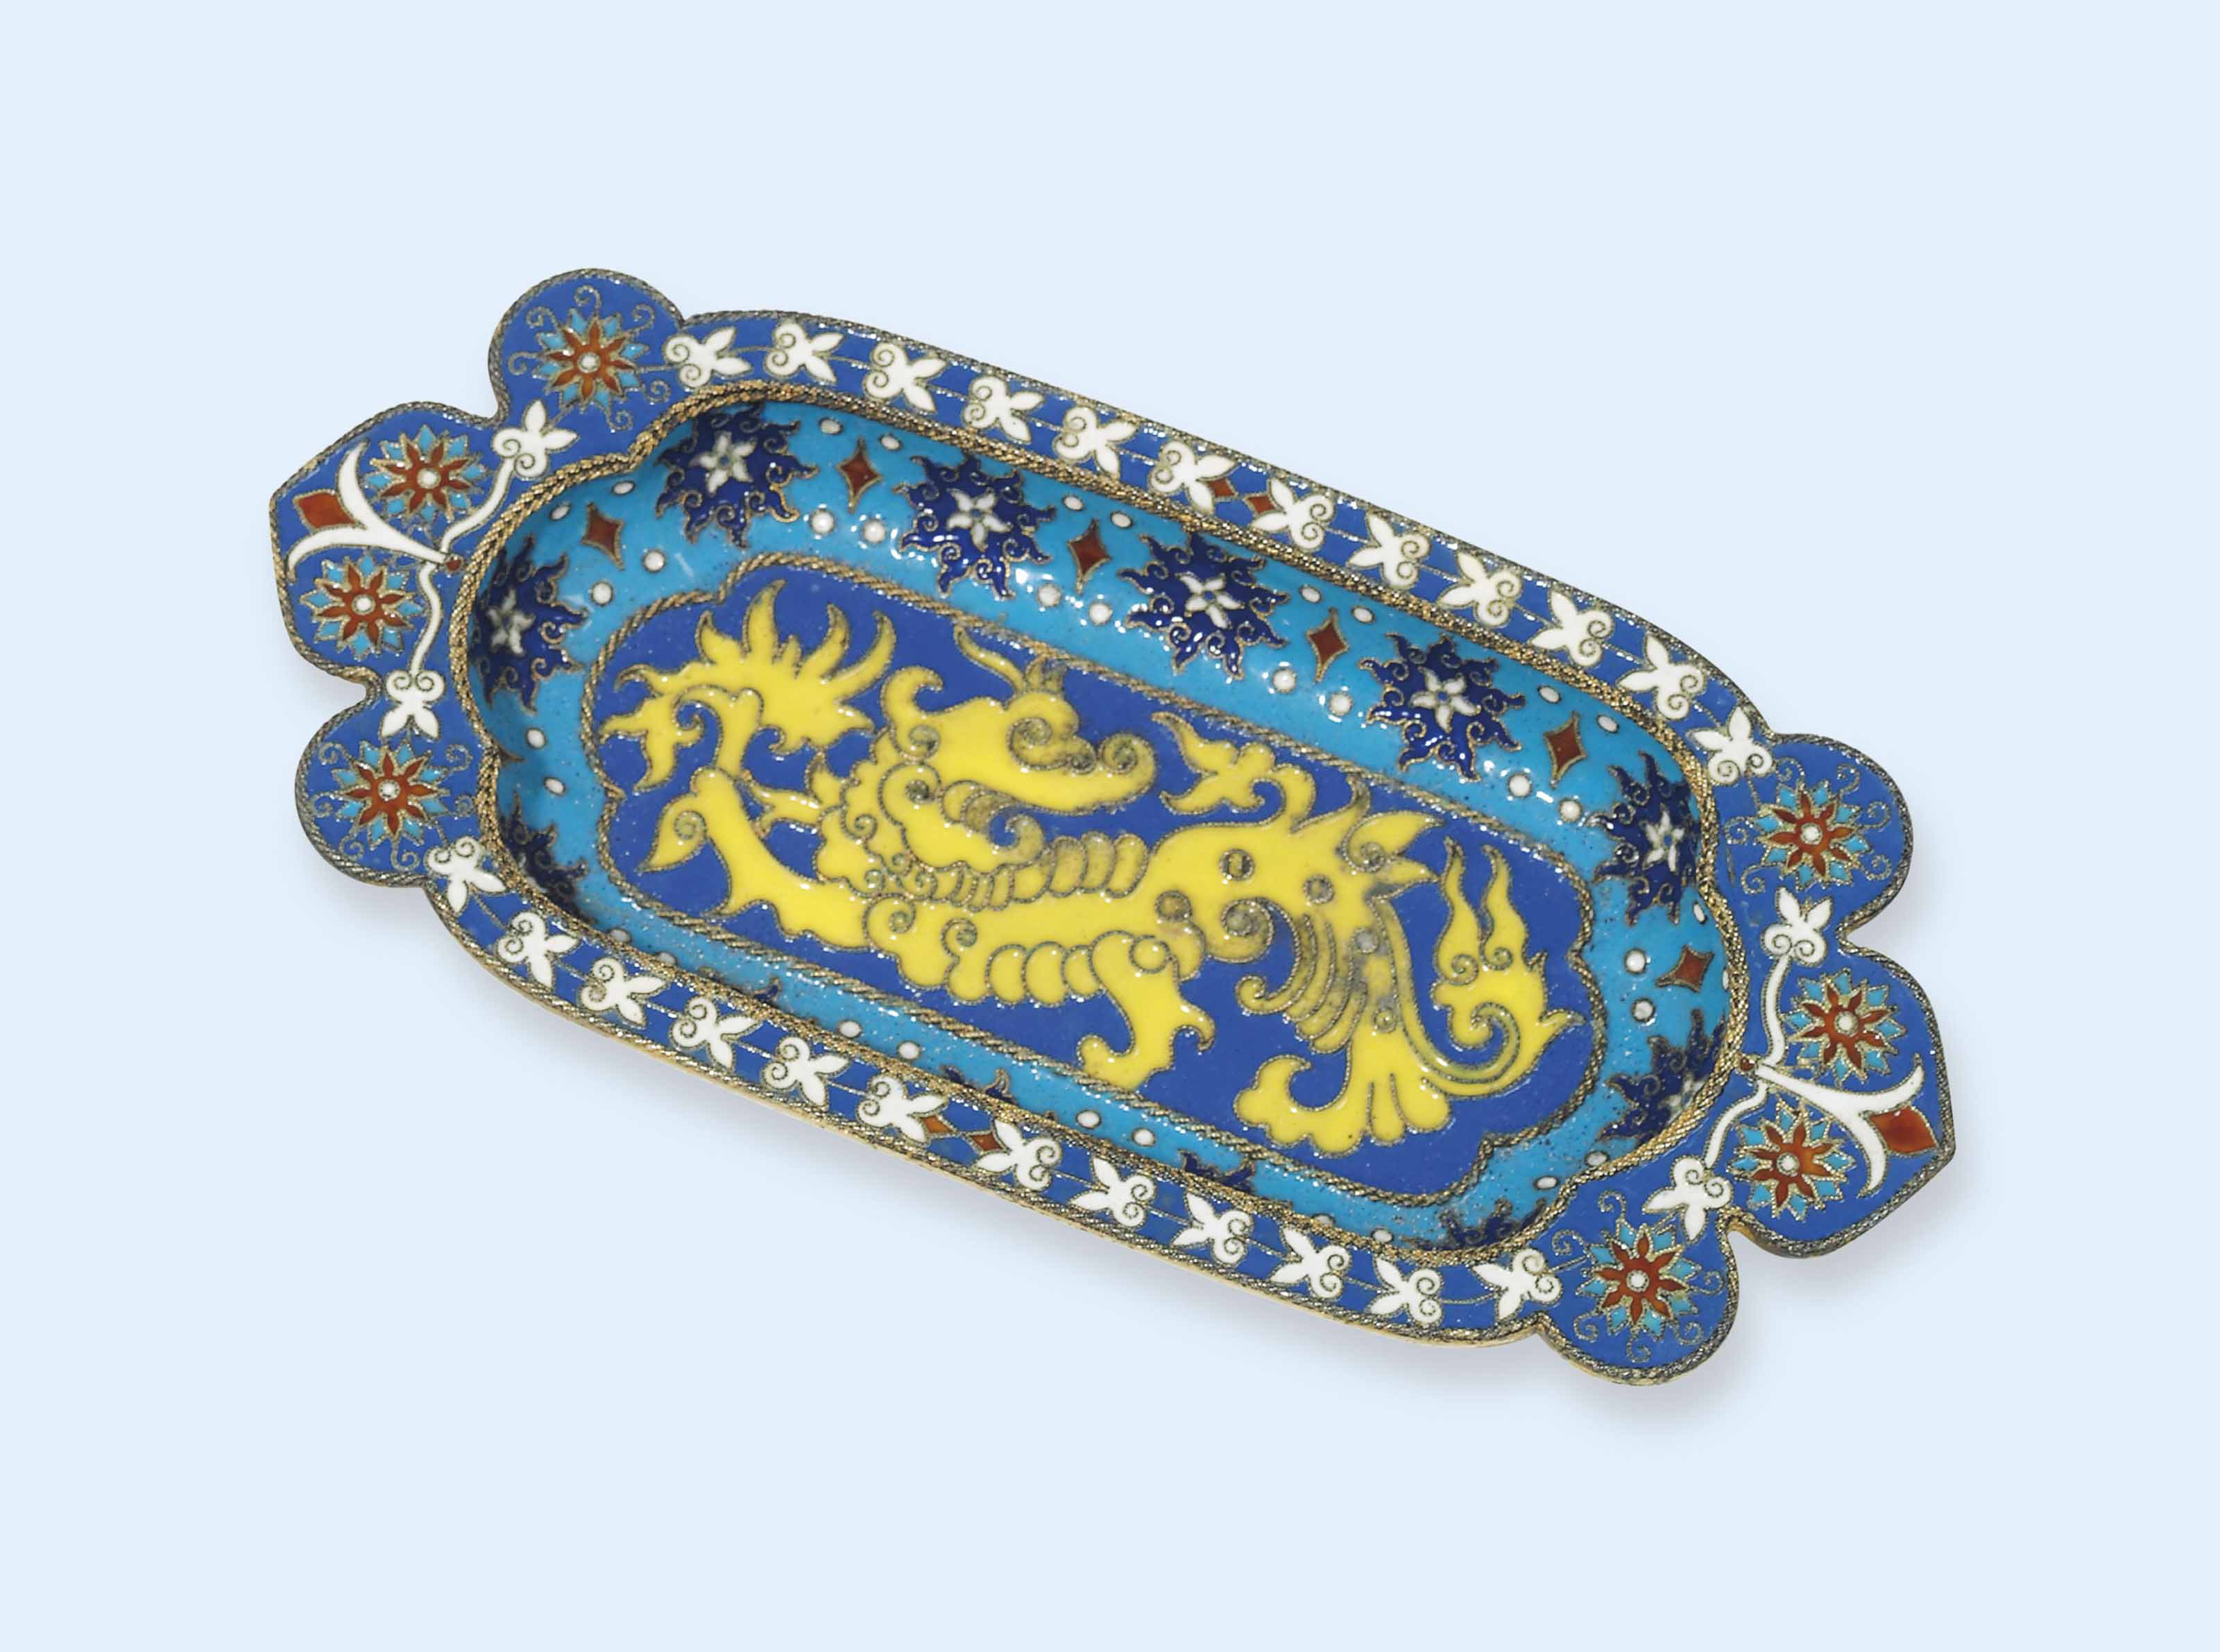 A RUSSIAN SILVER-GILT AND CLOISONNE ENAMEL PIN-TRAY